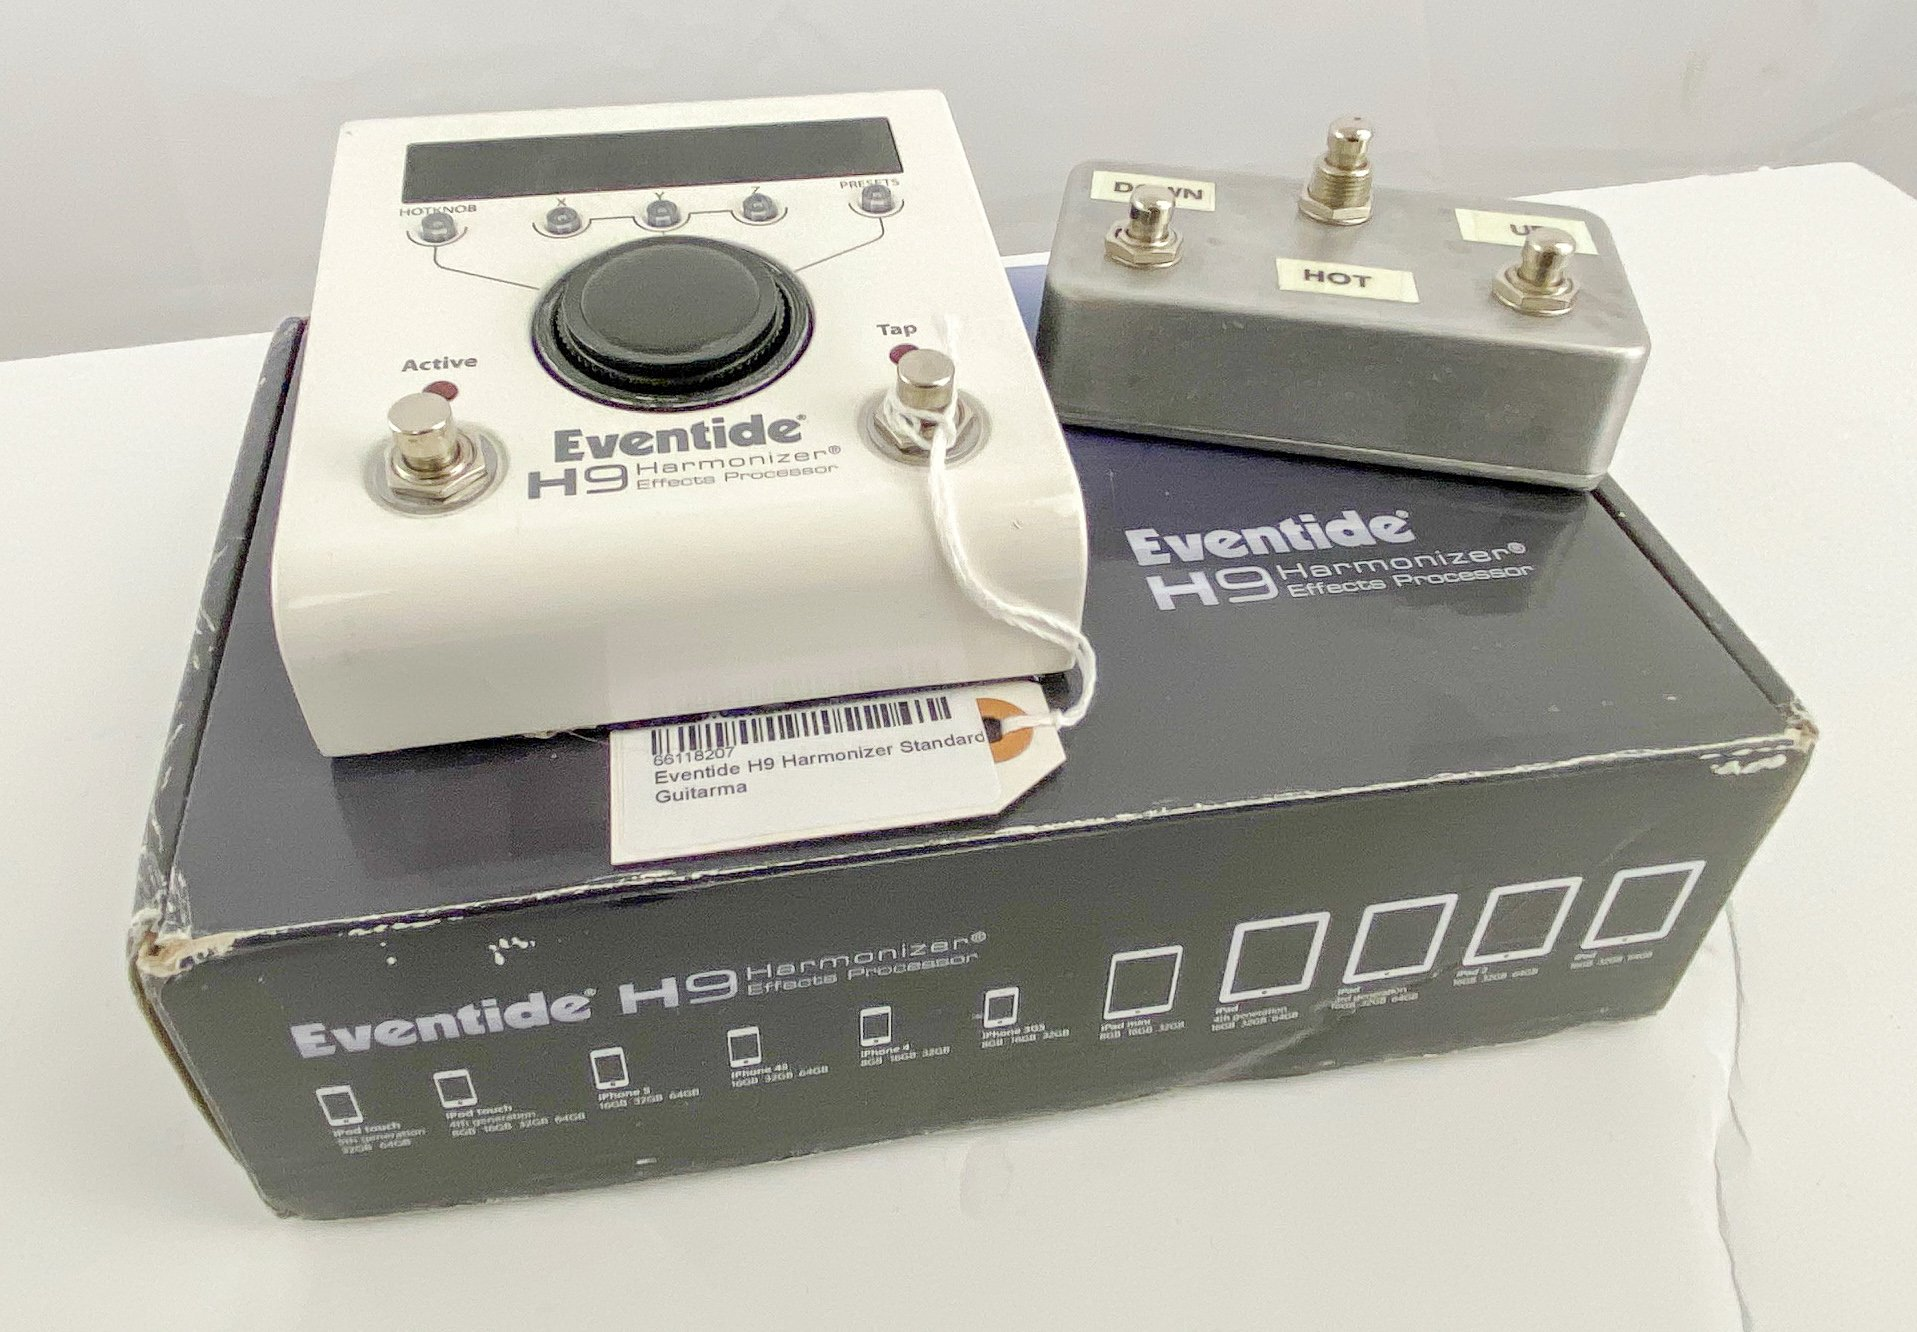 Eventide H9 Harmonizer Standard w/Aux switch + cables